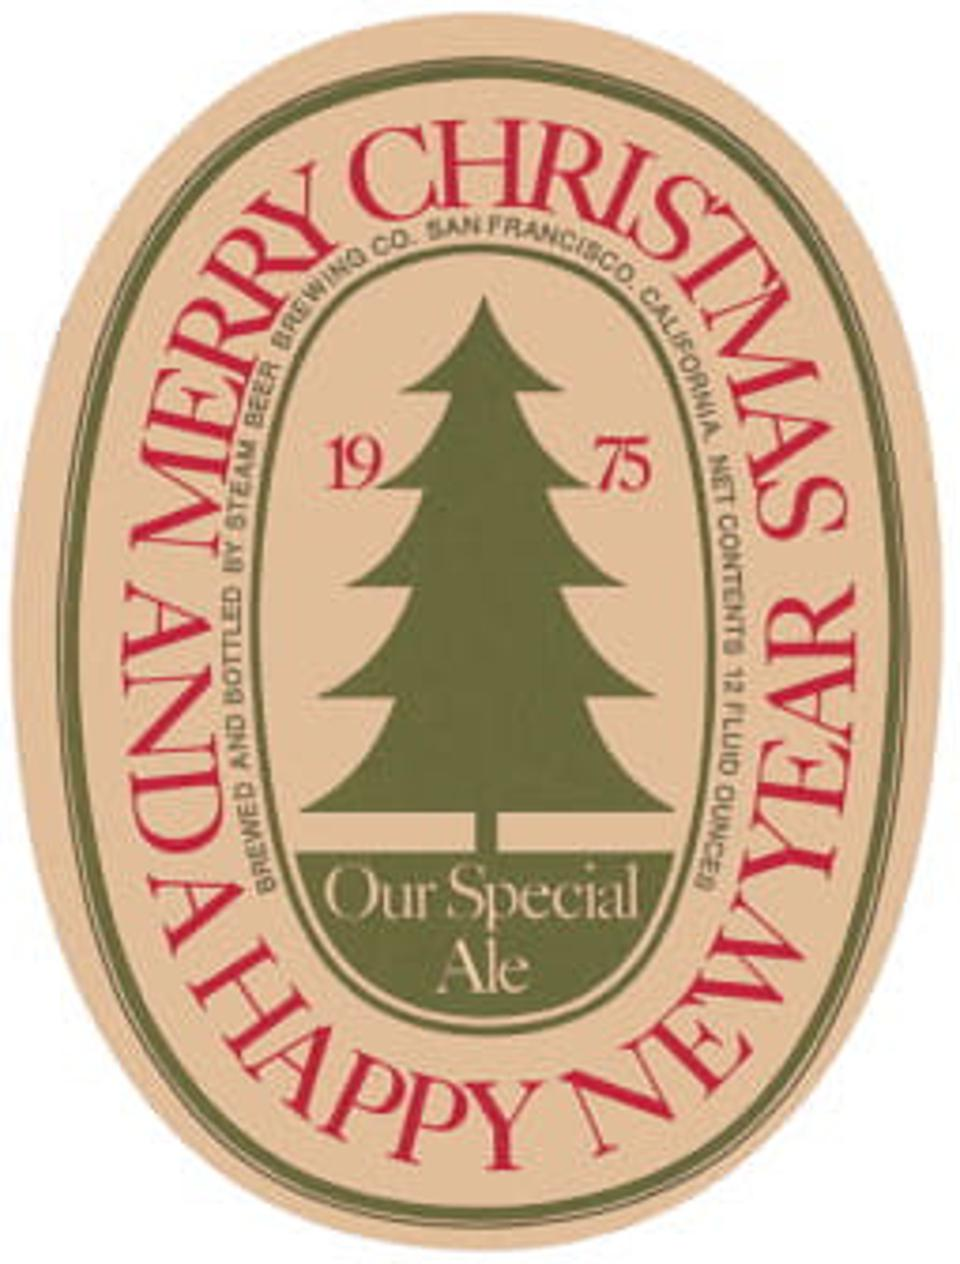 Here is the first Christmas ale label.